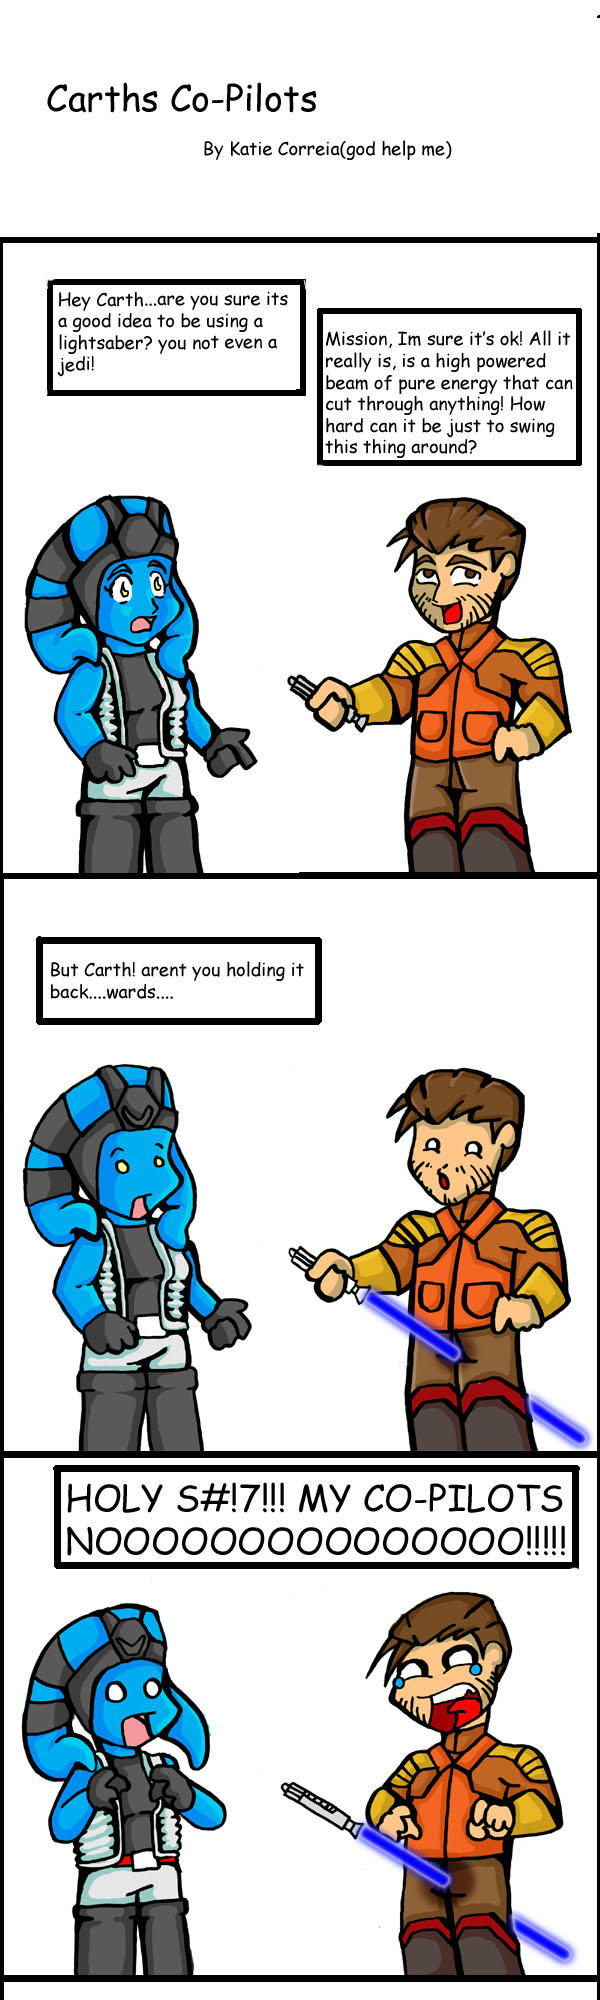 how do you meet carth in kotor 2